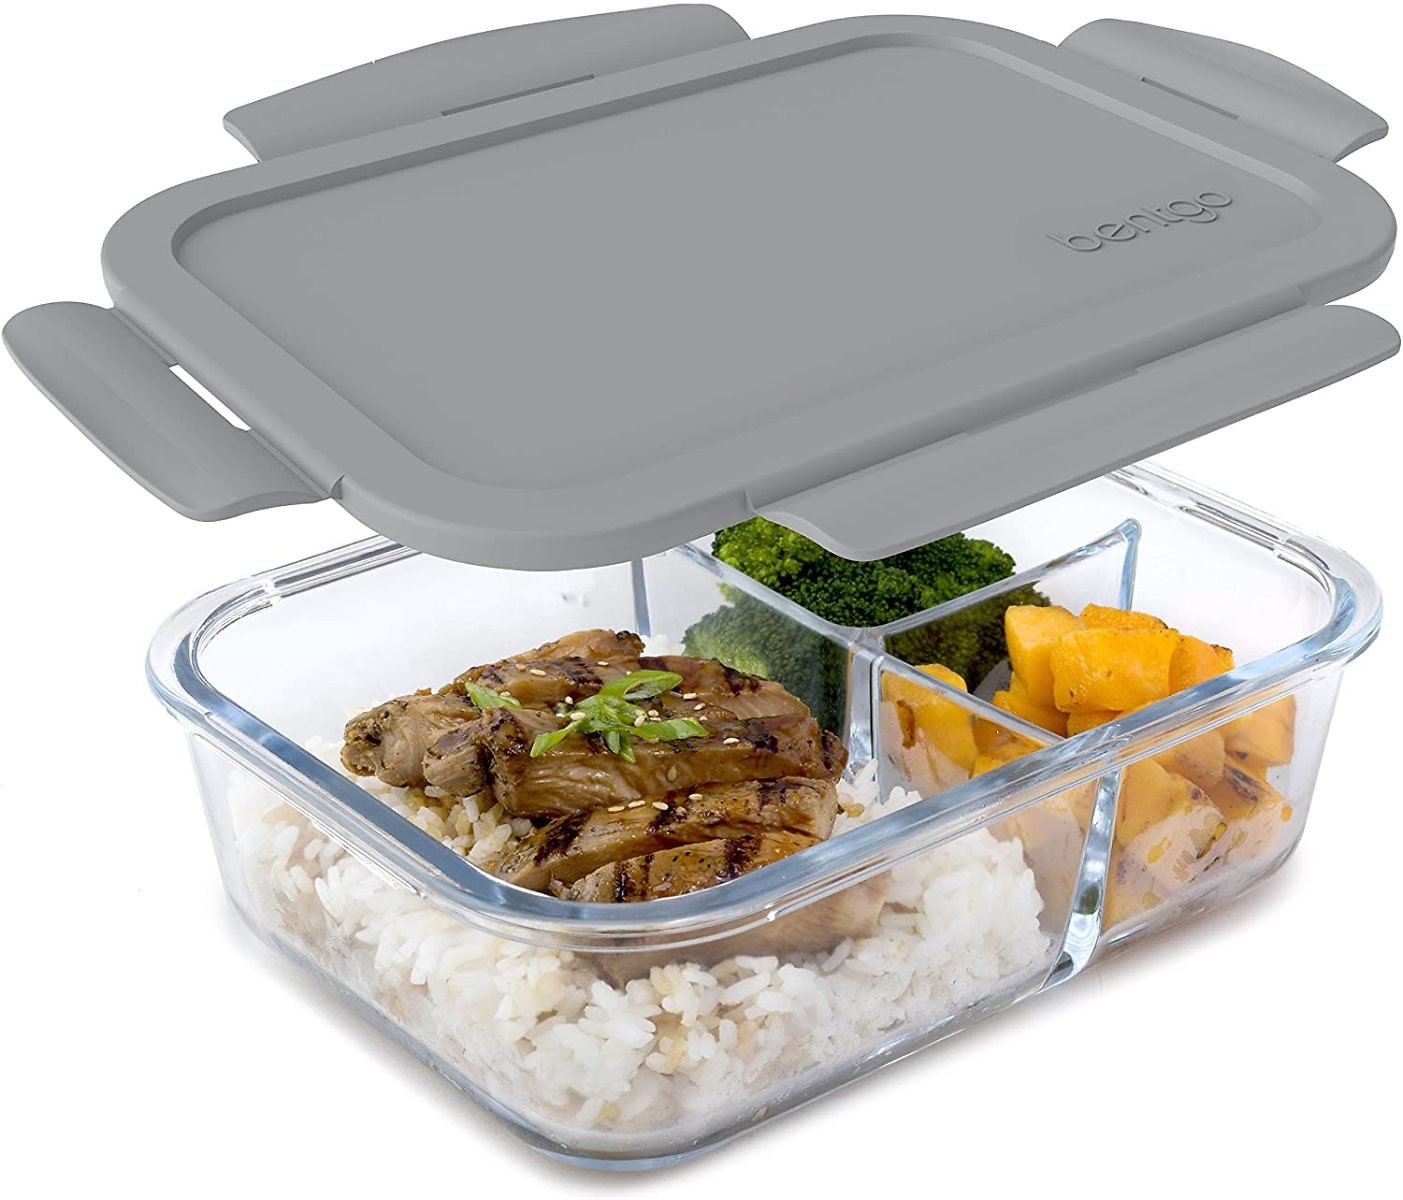 Bentgo Glass (Gray) – Leak-Proof, 3-Compartment Oven-Safe Glass Lunch Container